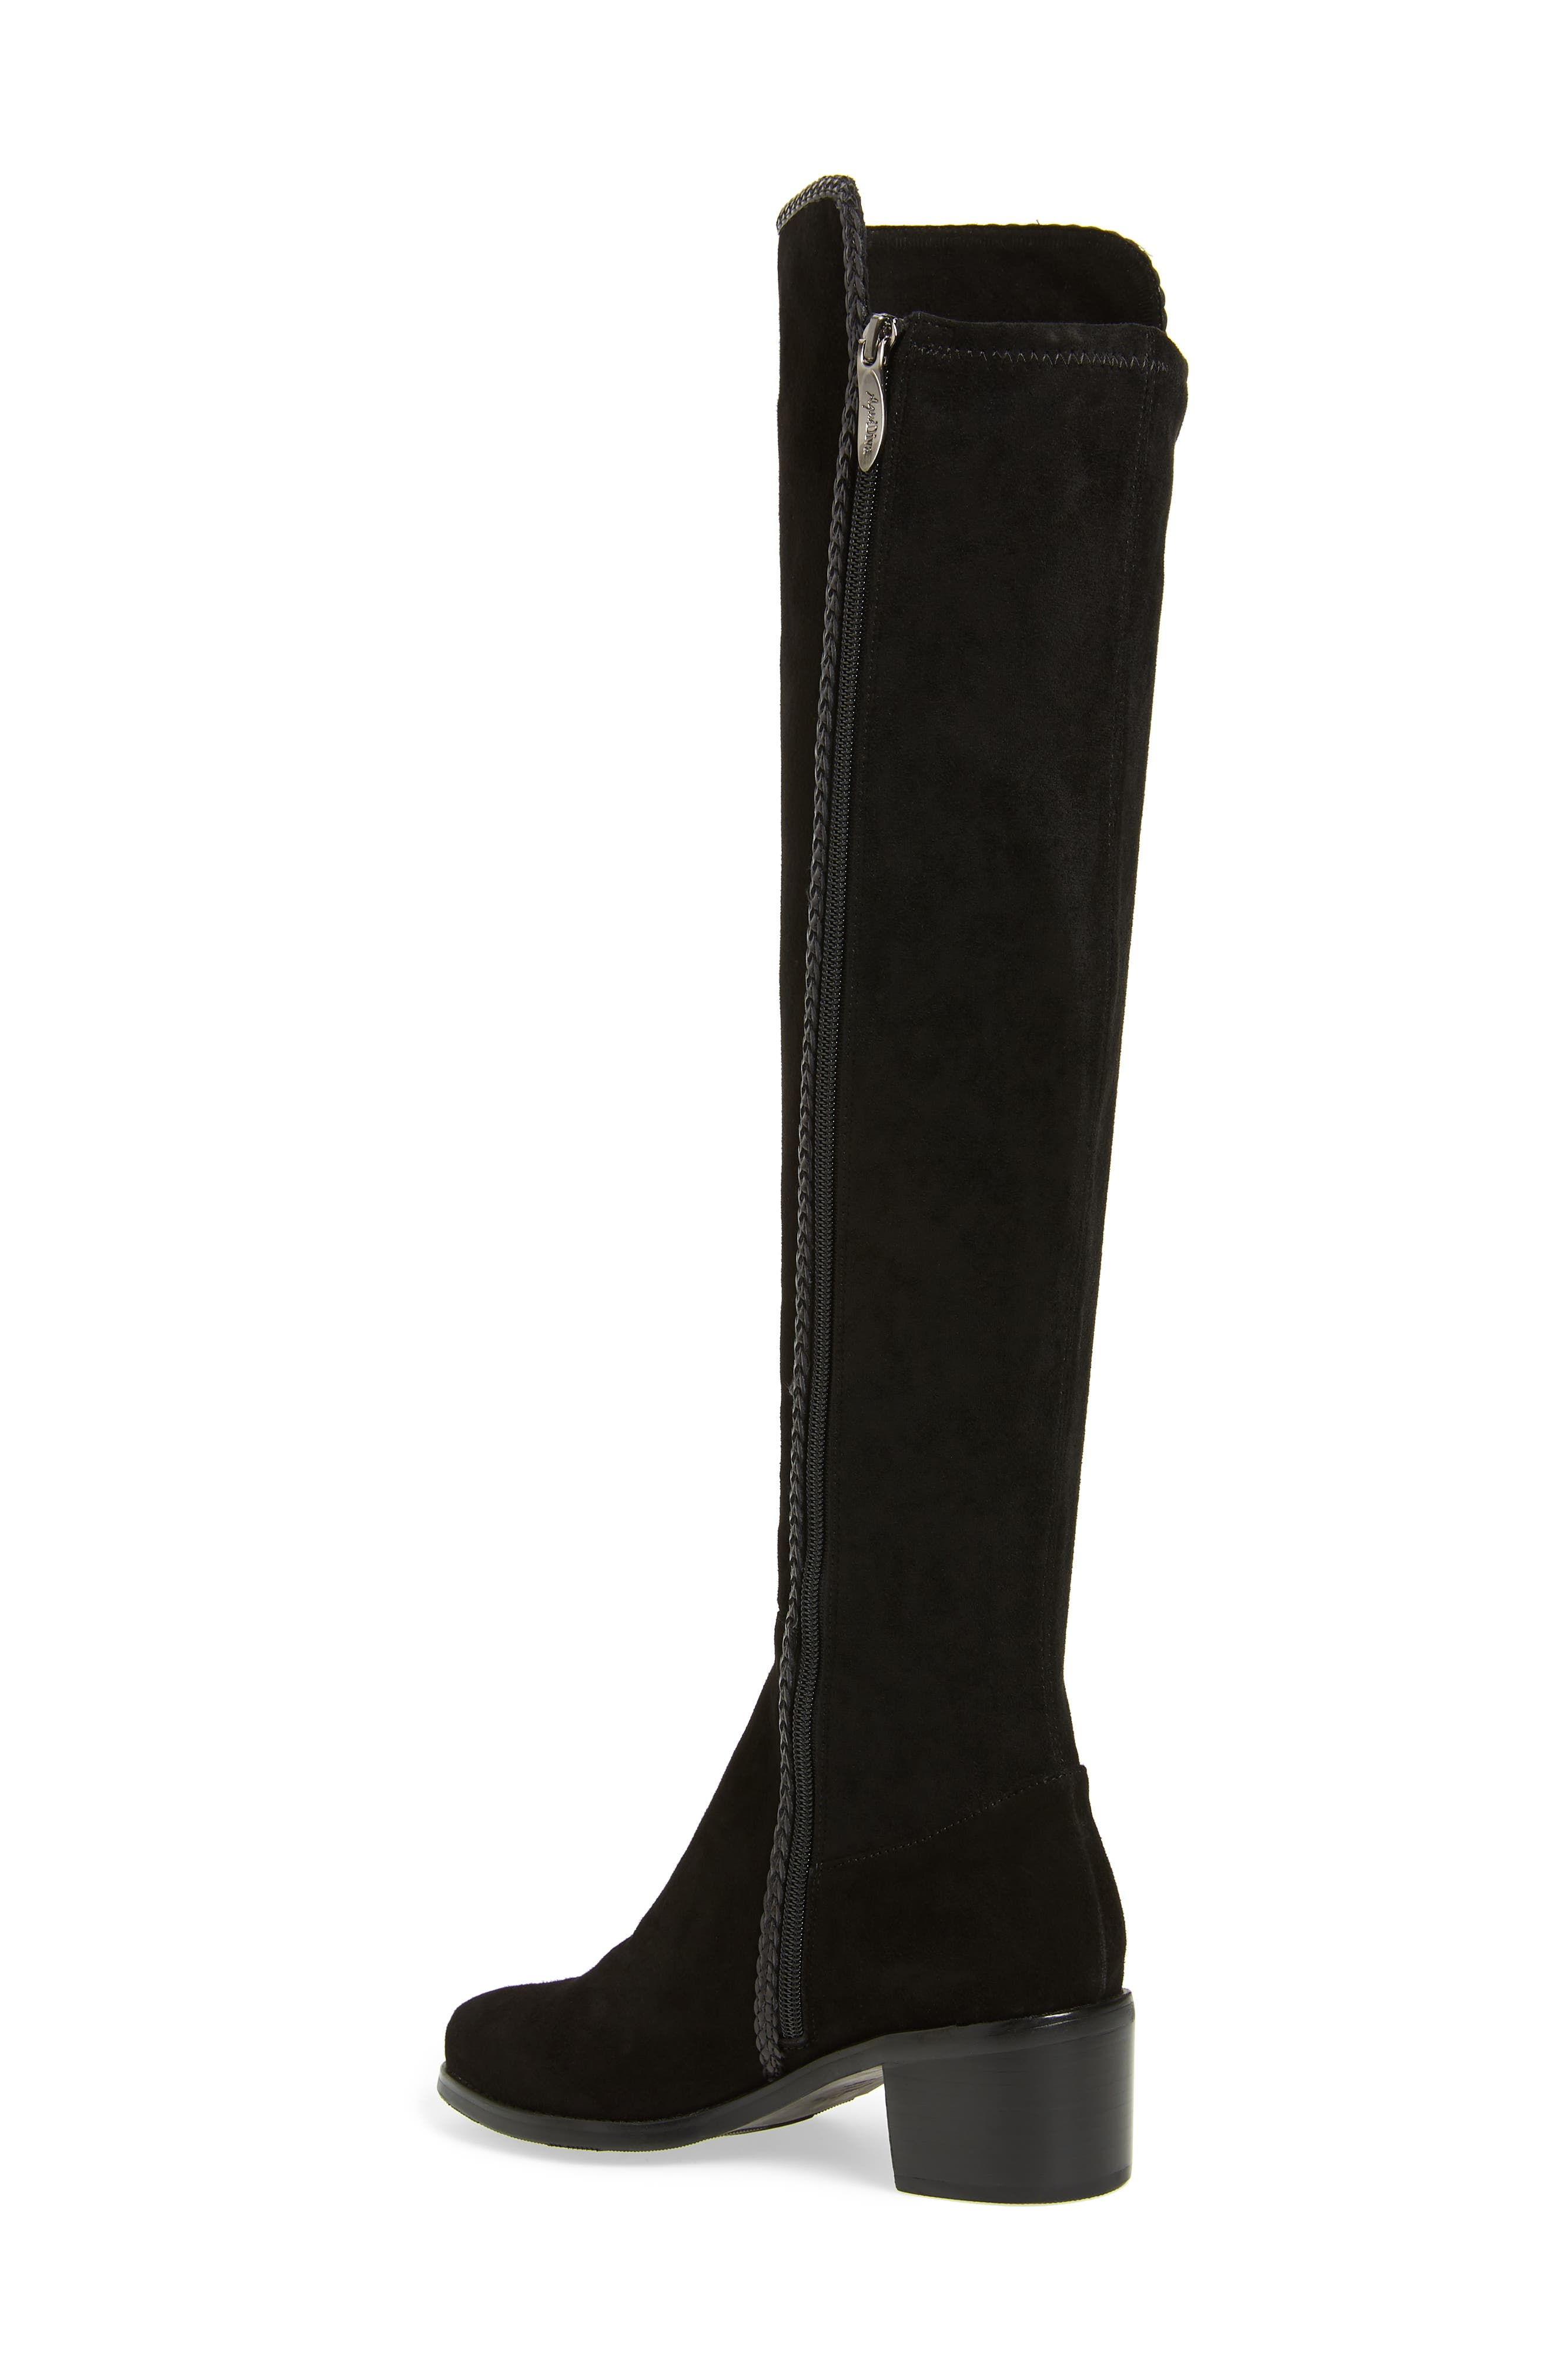 Florence Waterproof Over the Knee Boot,                             Alternate thumbnail 2, color,                             BLACK SUEDE